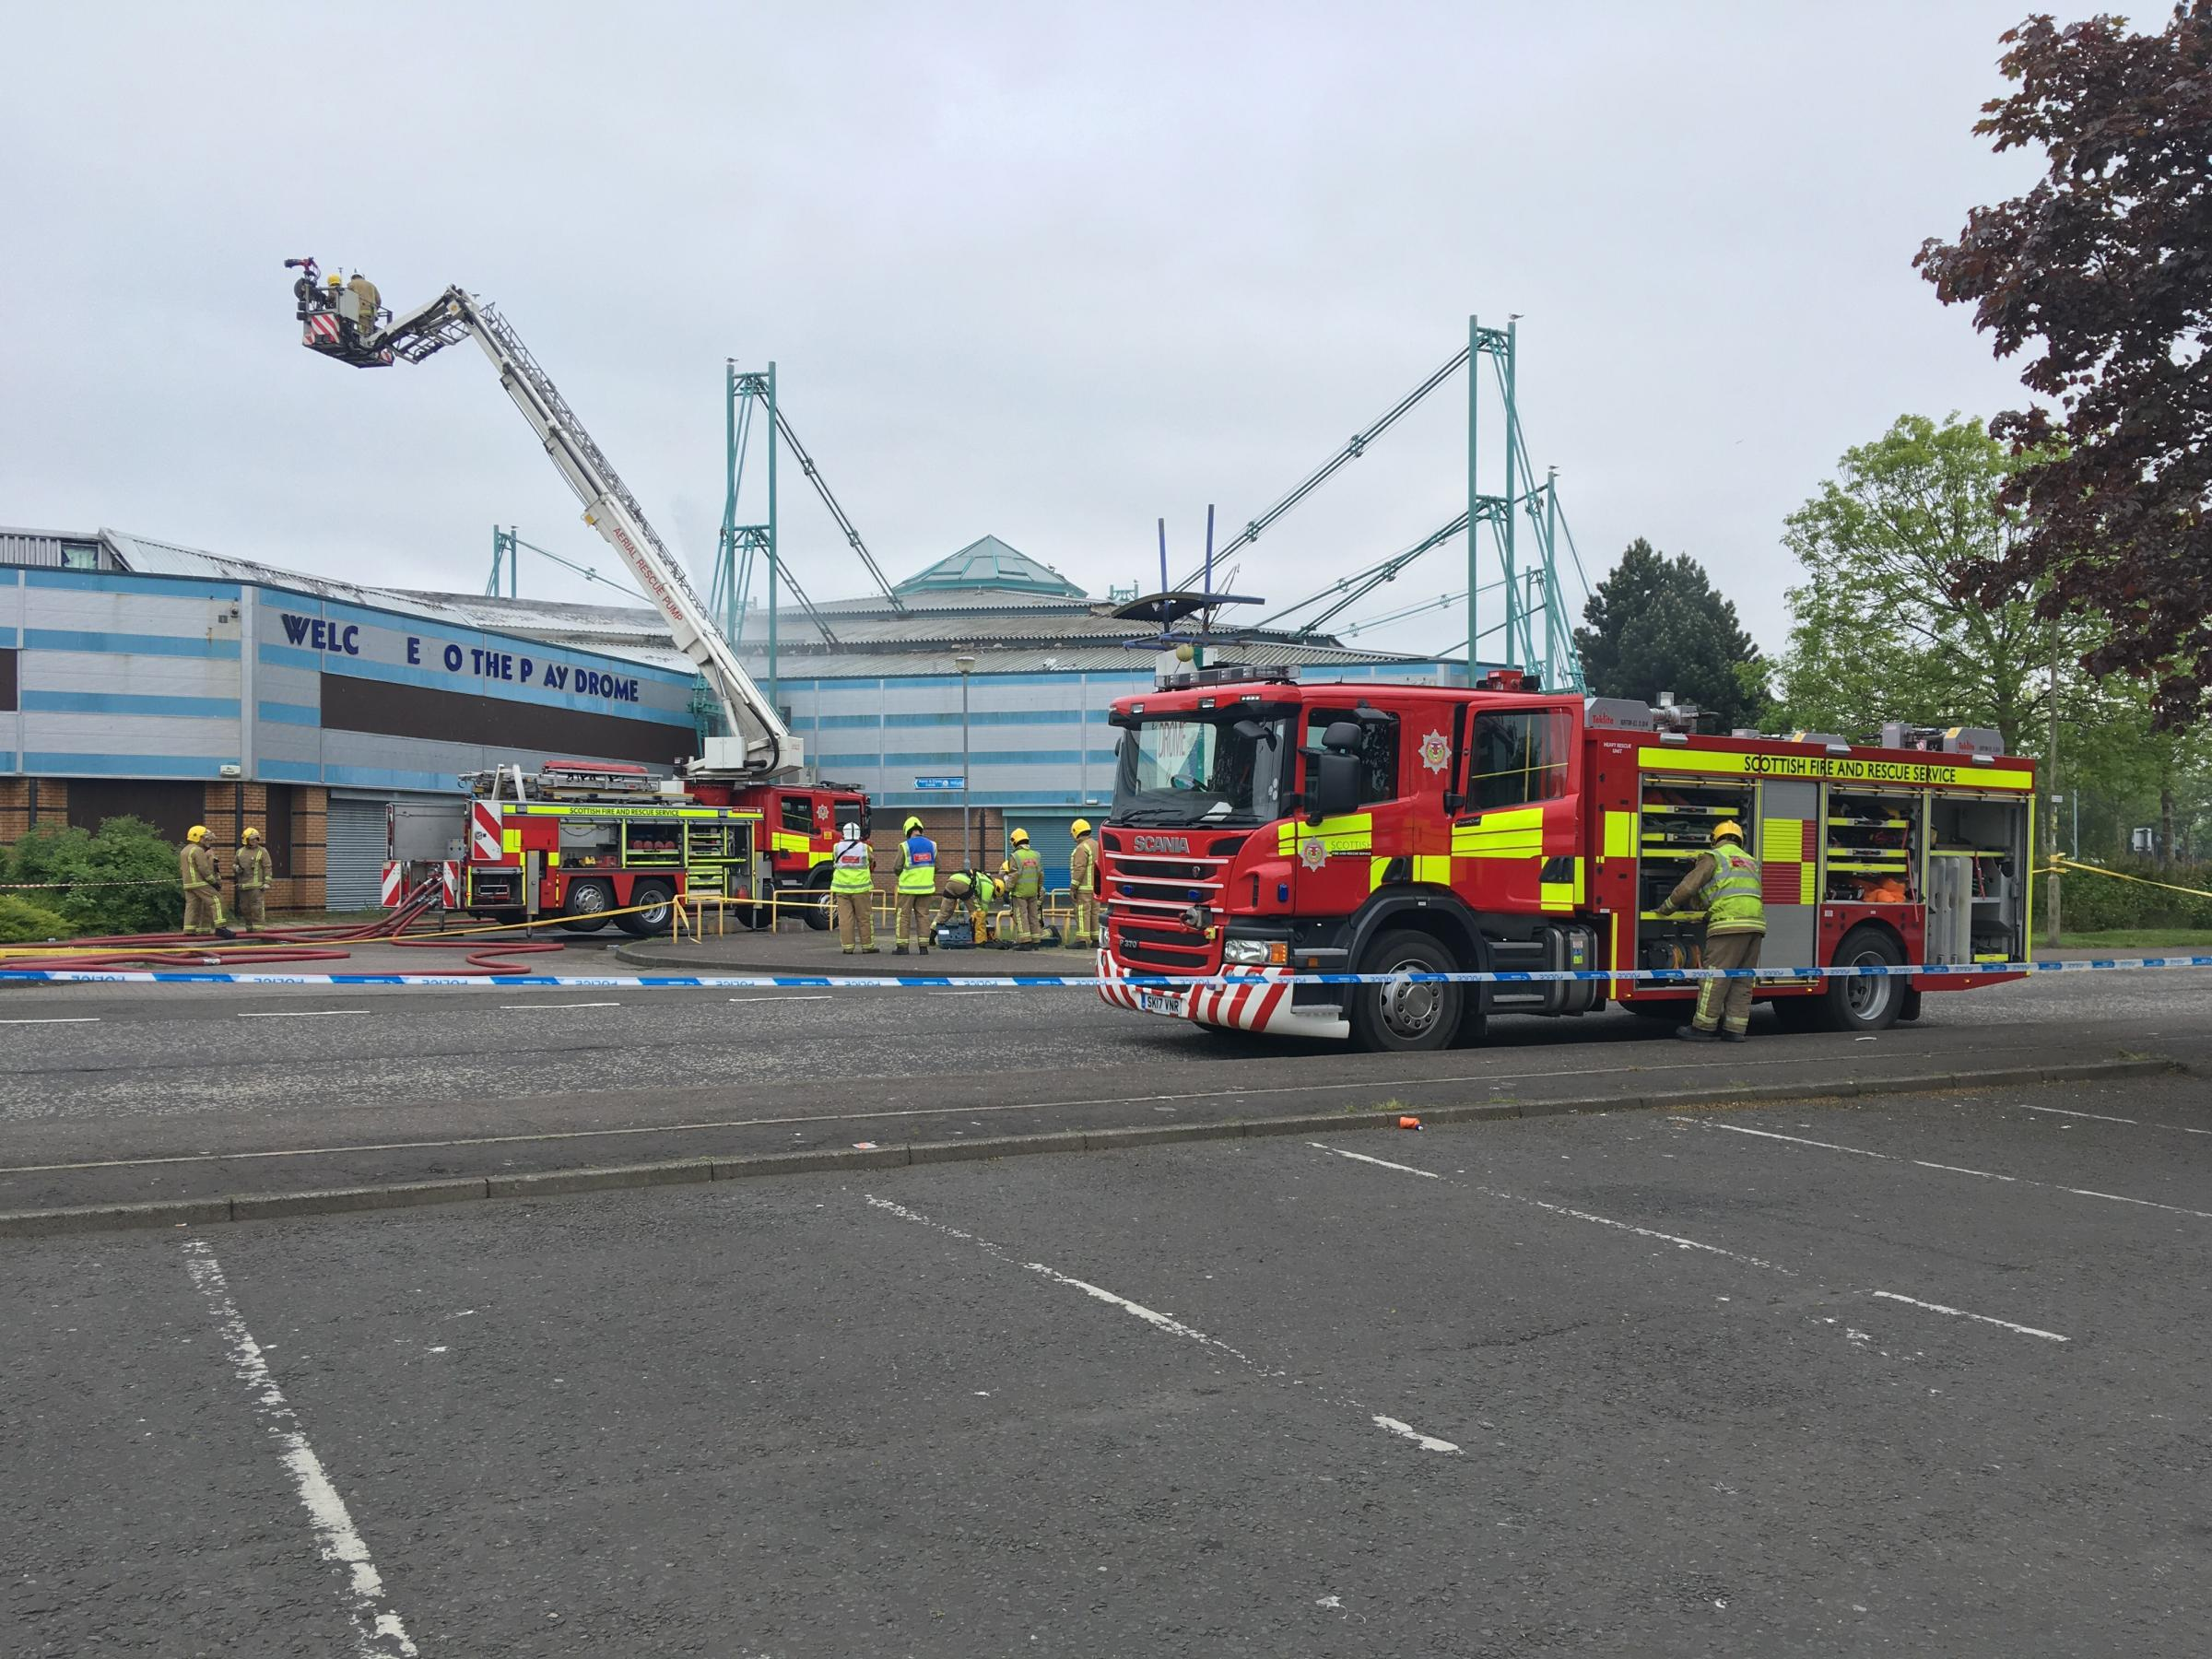 Fire crews at the scene of the blaze at Clydebank's Play Drome